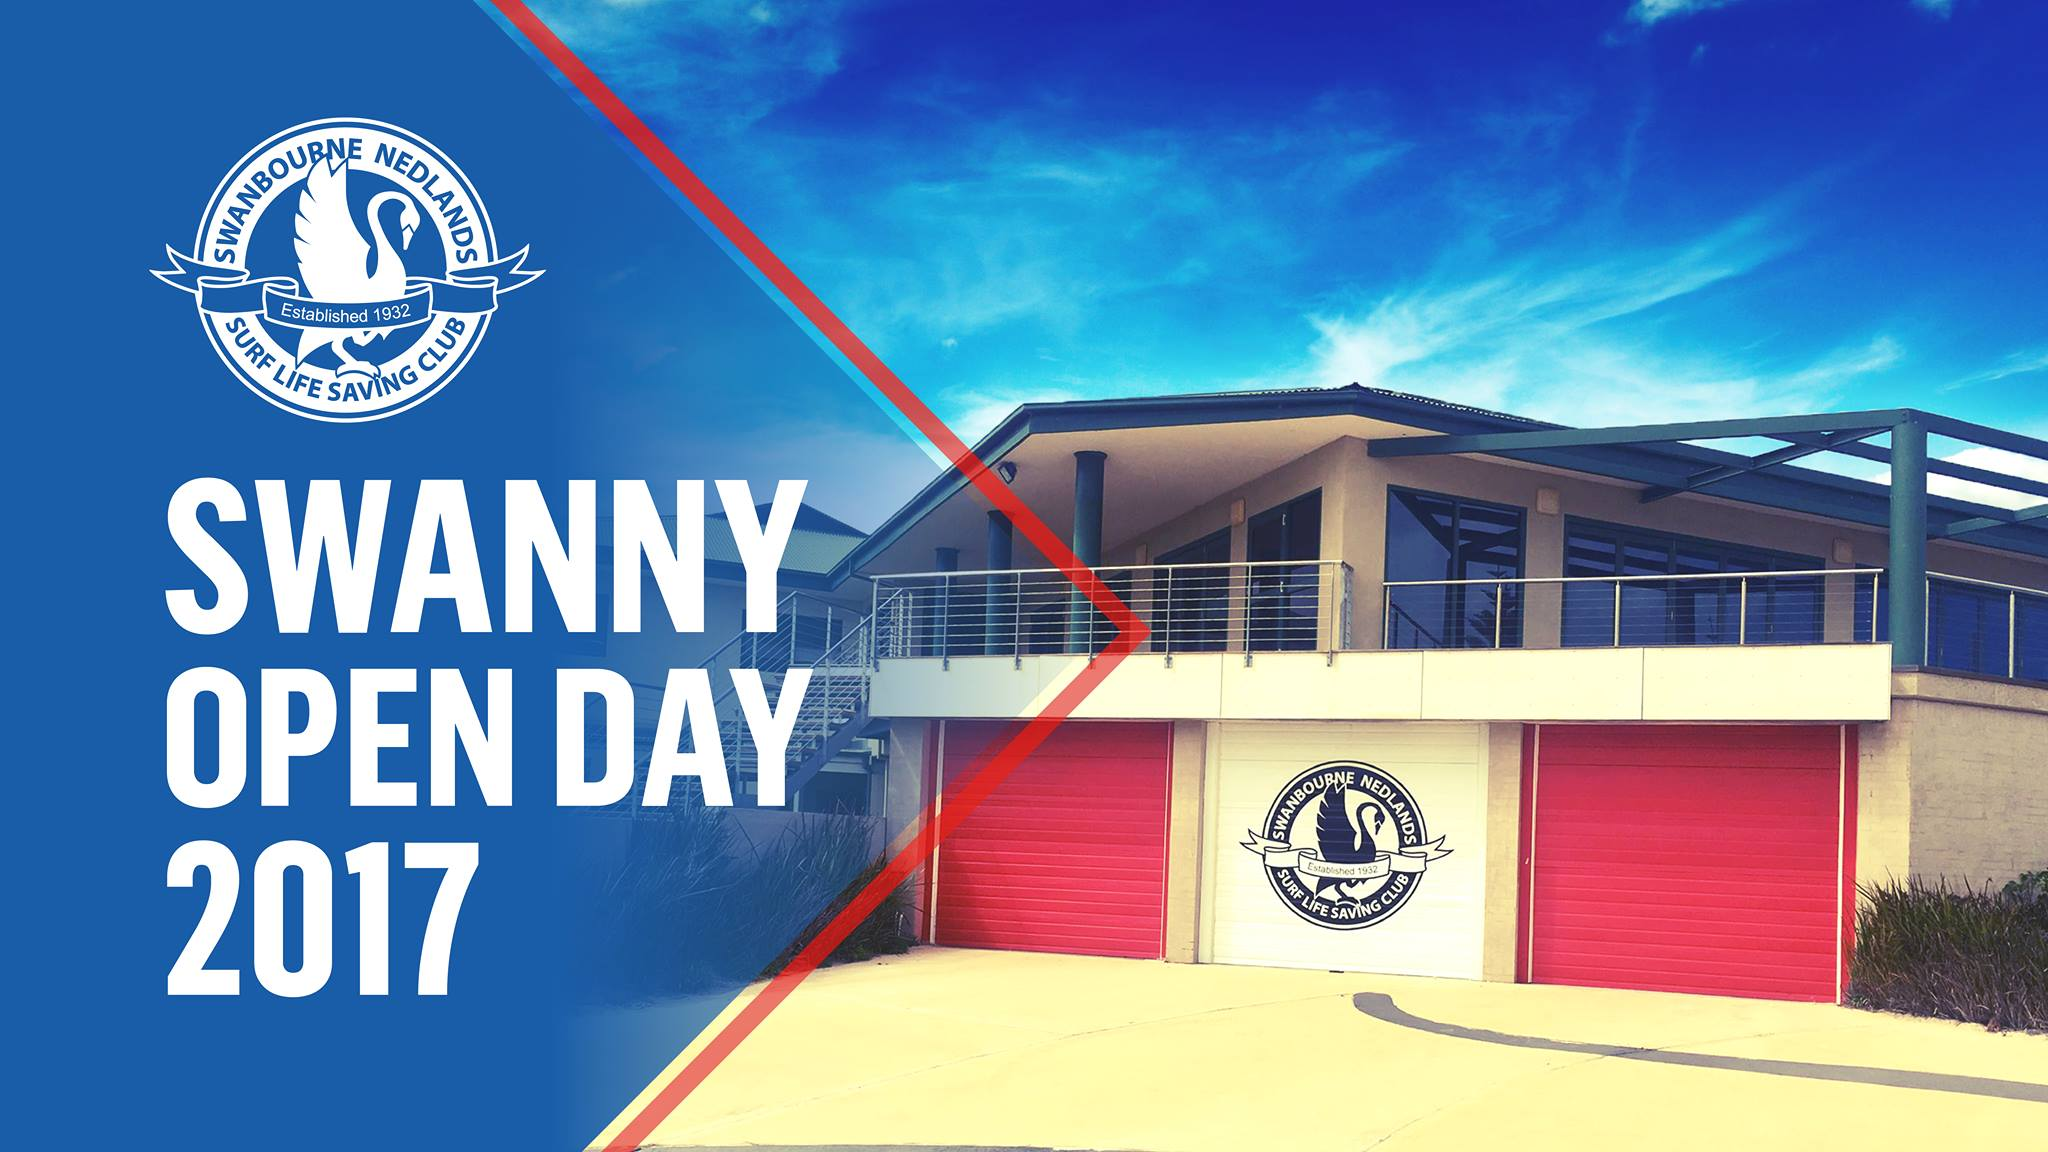 swanny open day